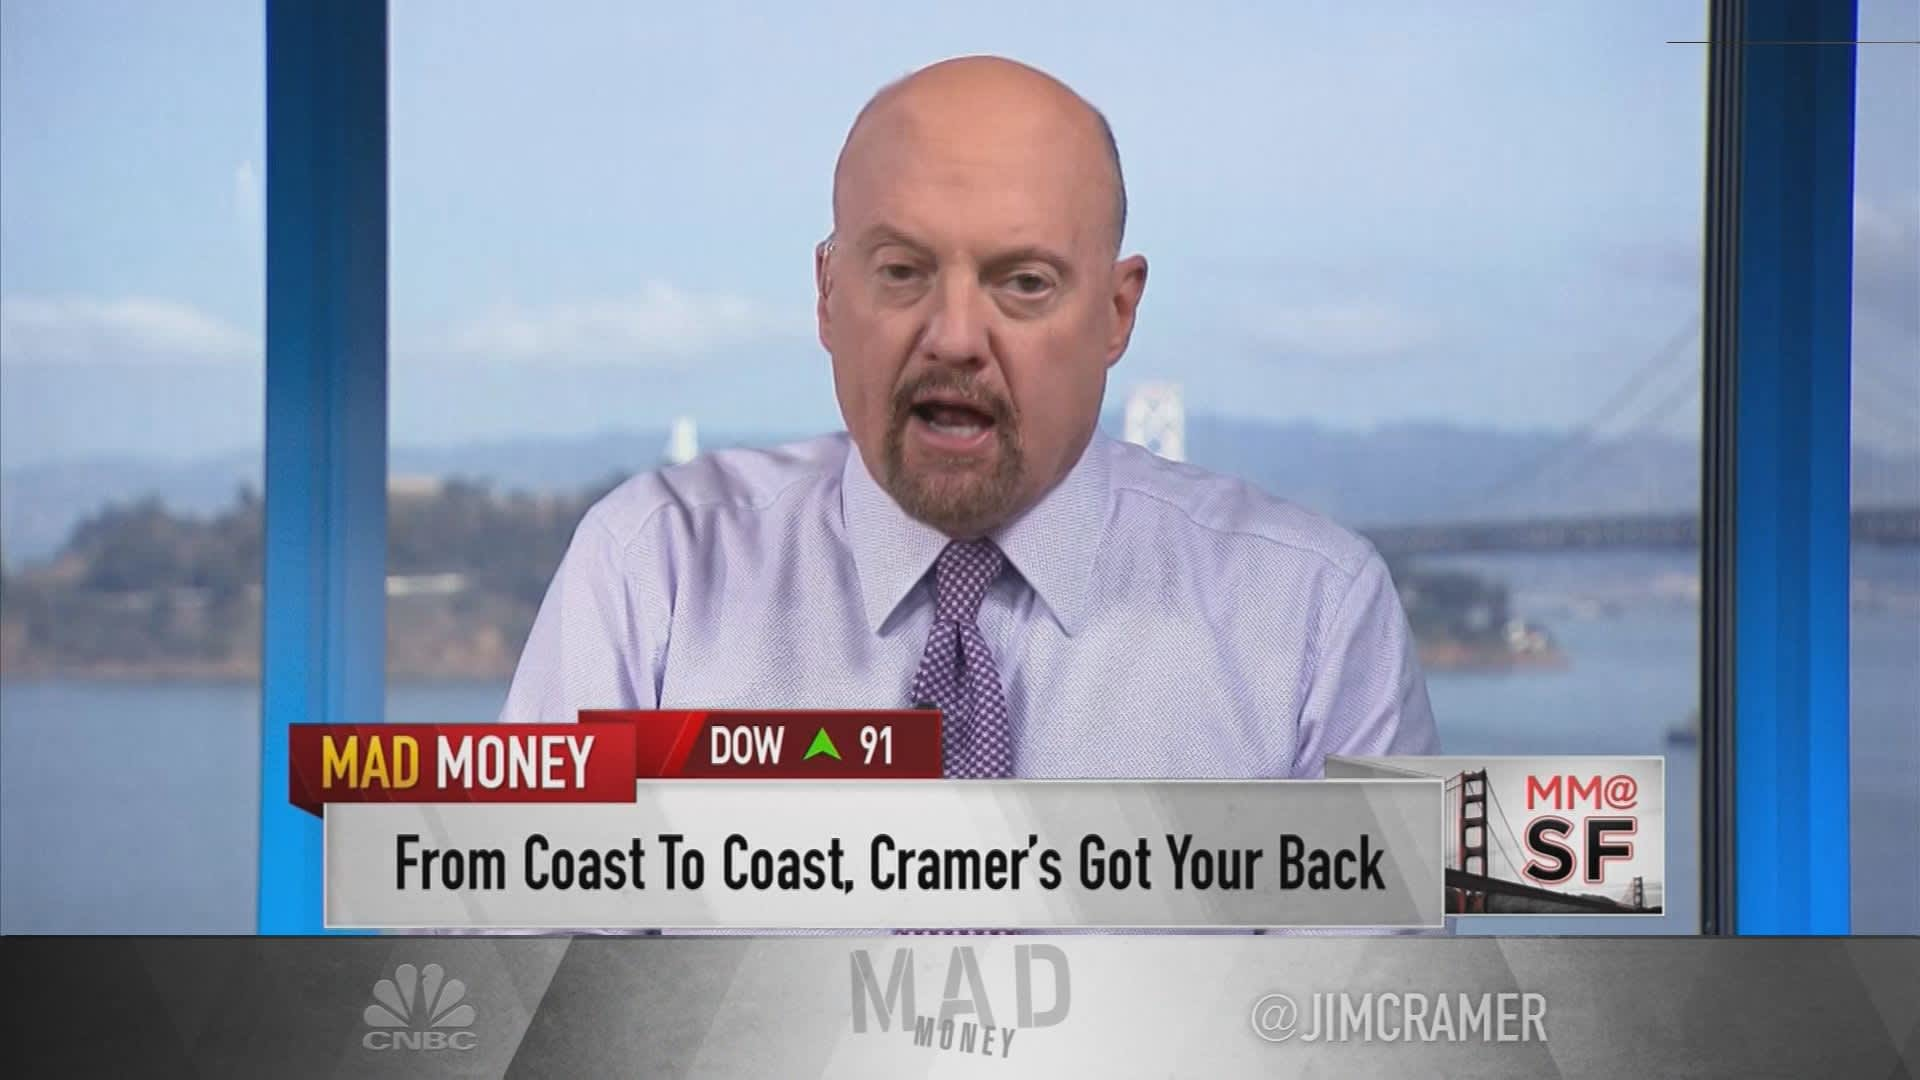 Jim Cramer: Stocks of companies with new access to China are worth buying into weakness